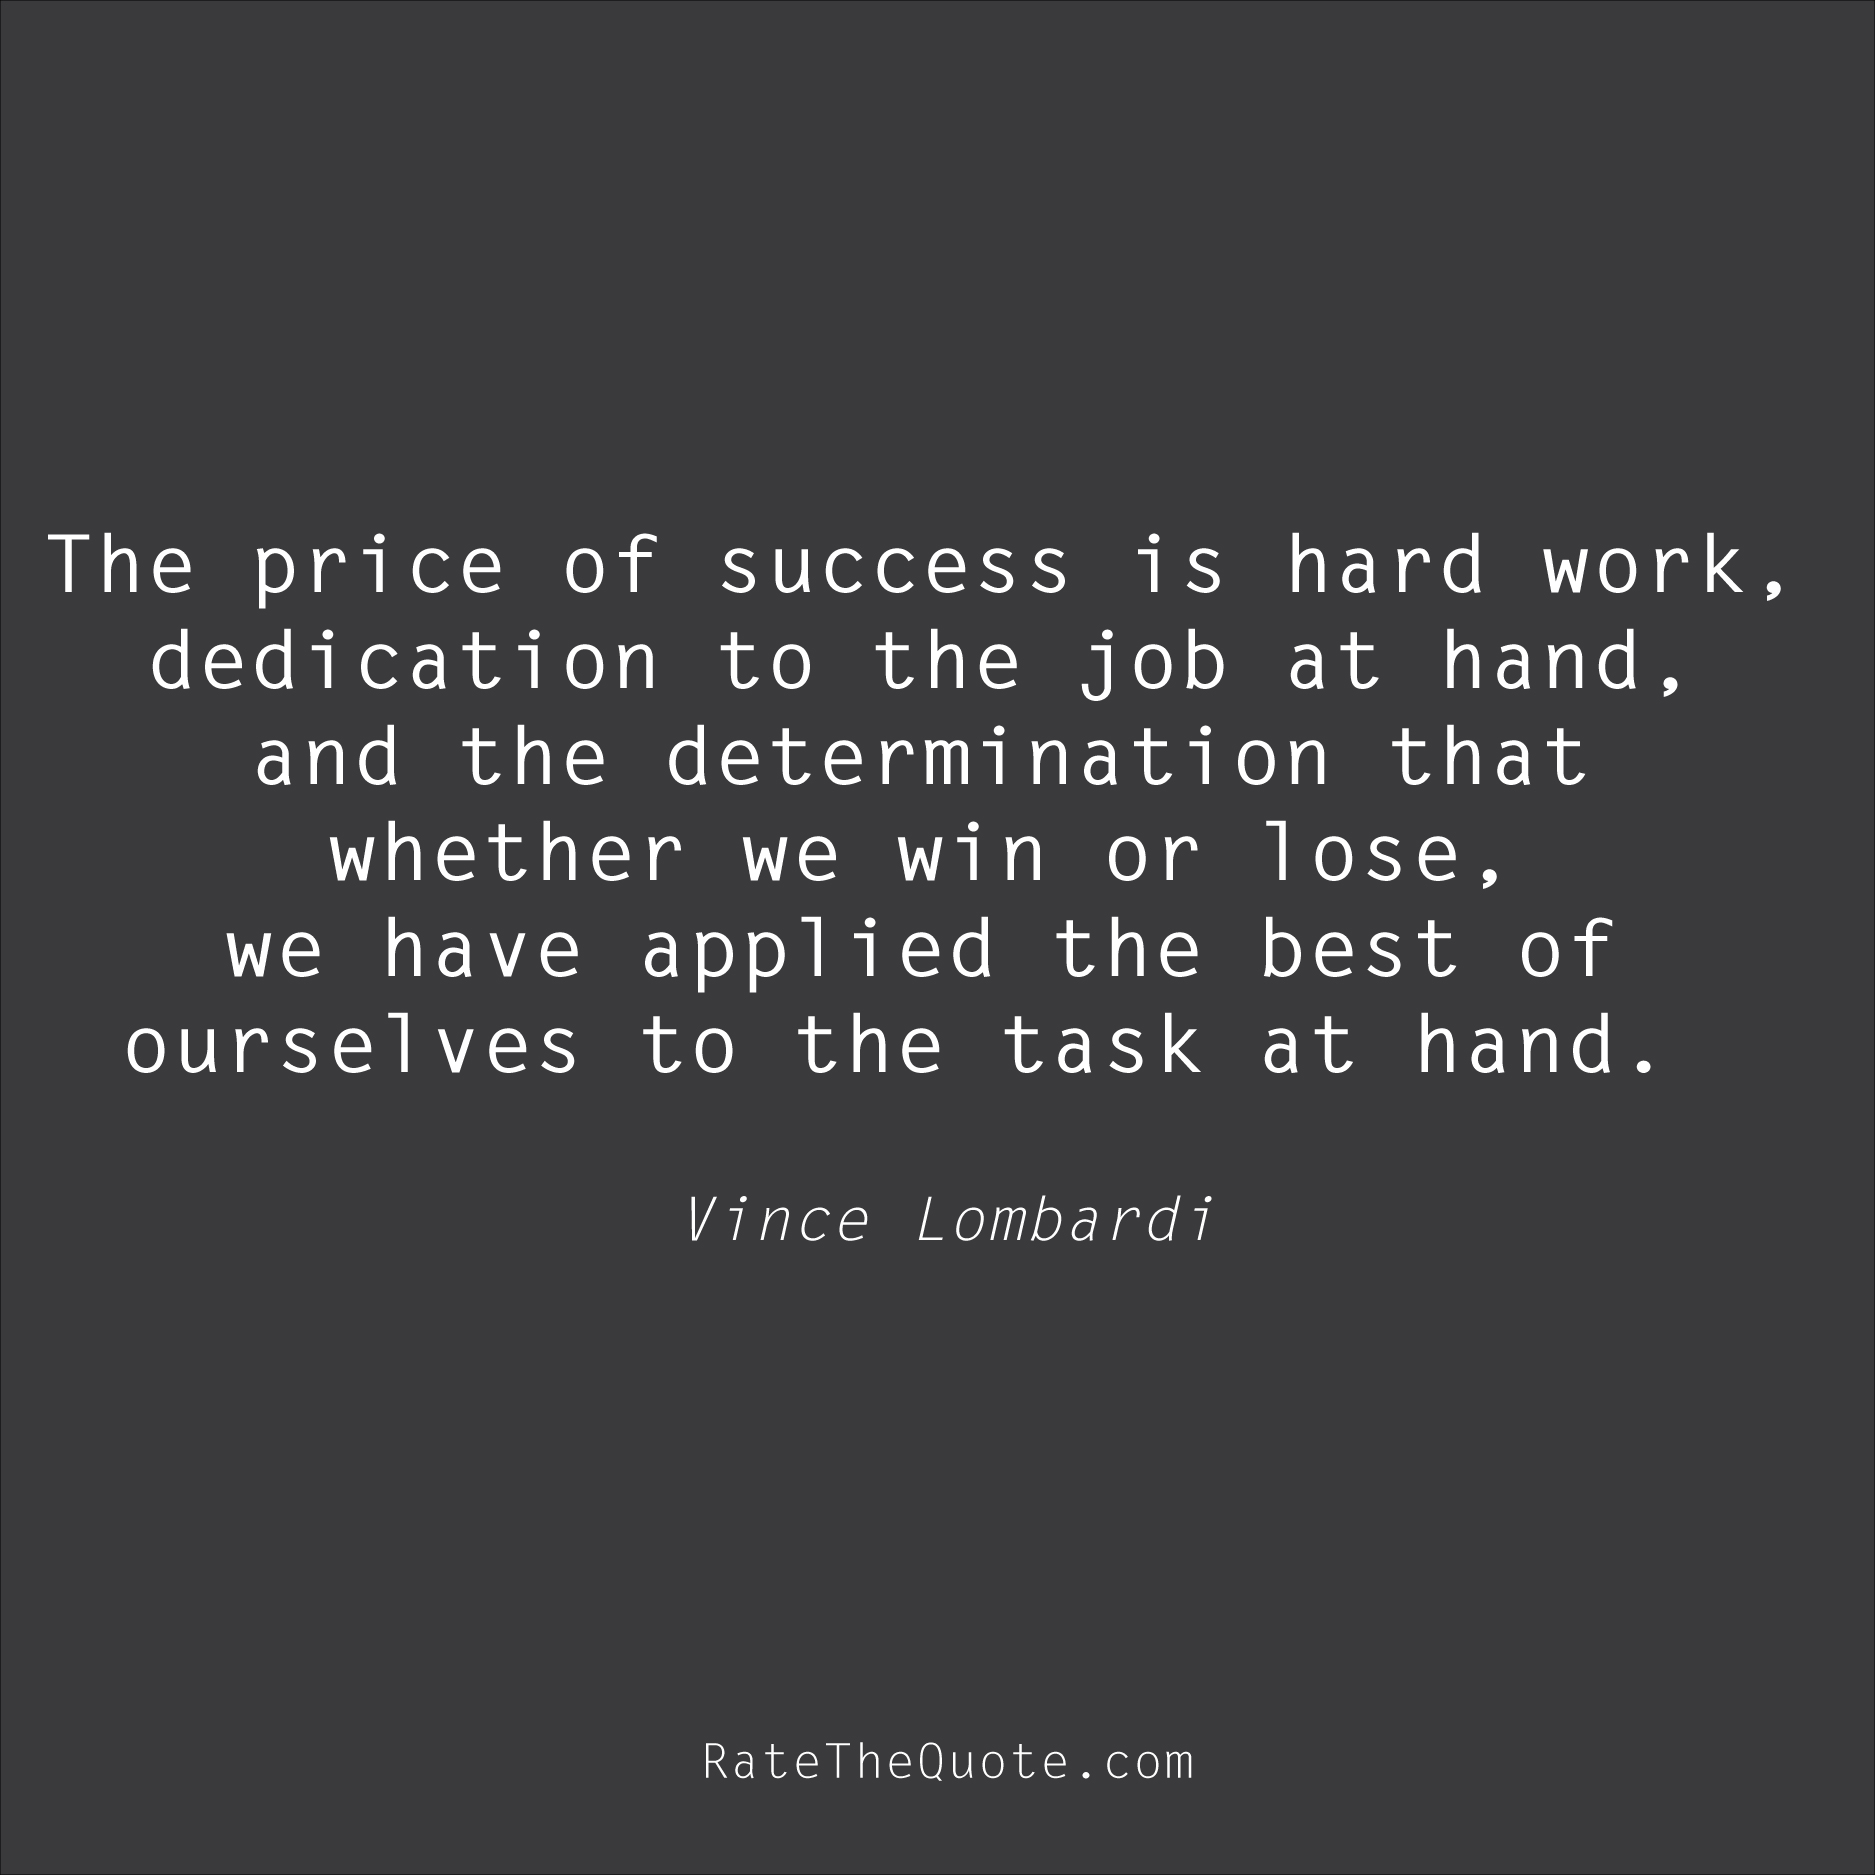 Success Quotes The price of success is hard work, dedication to the job at hand, and the determination that whether we win or lose, we have applied the best of ourselves to the task at hand. Vince Lombardi